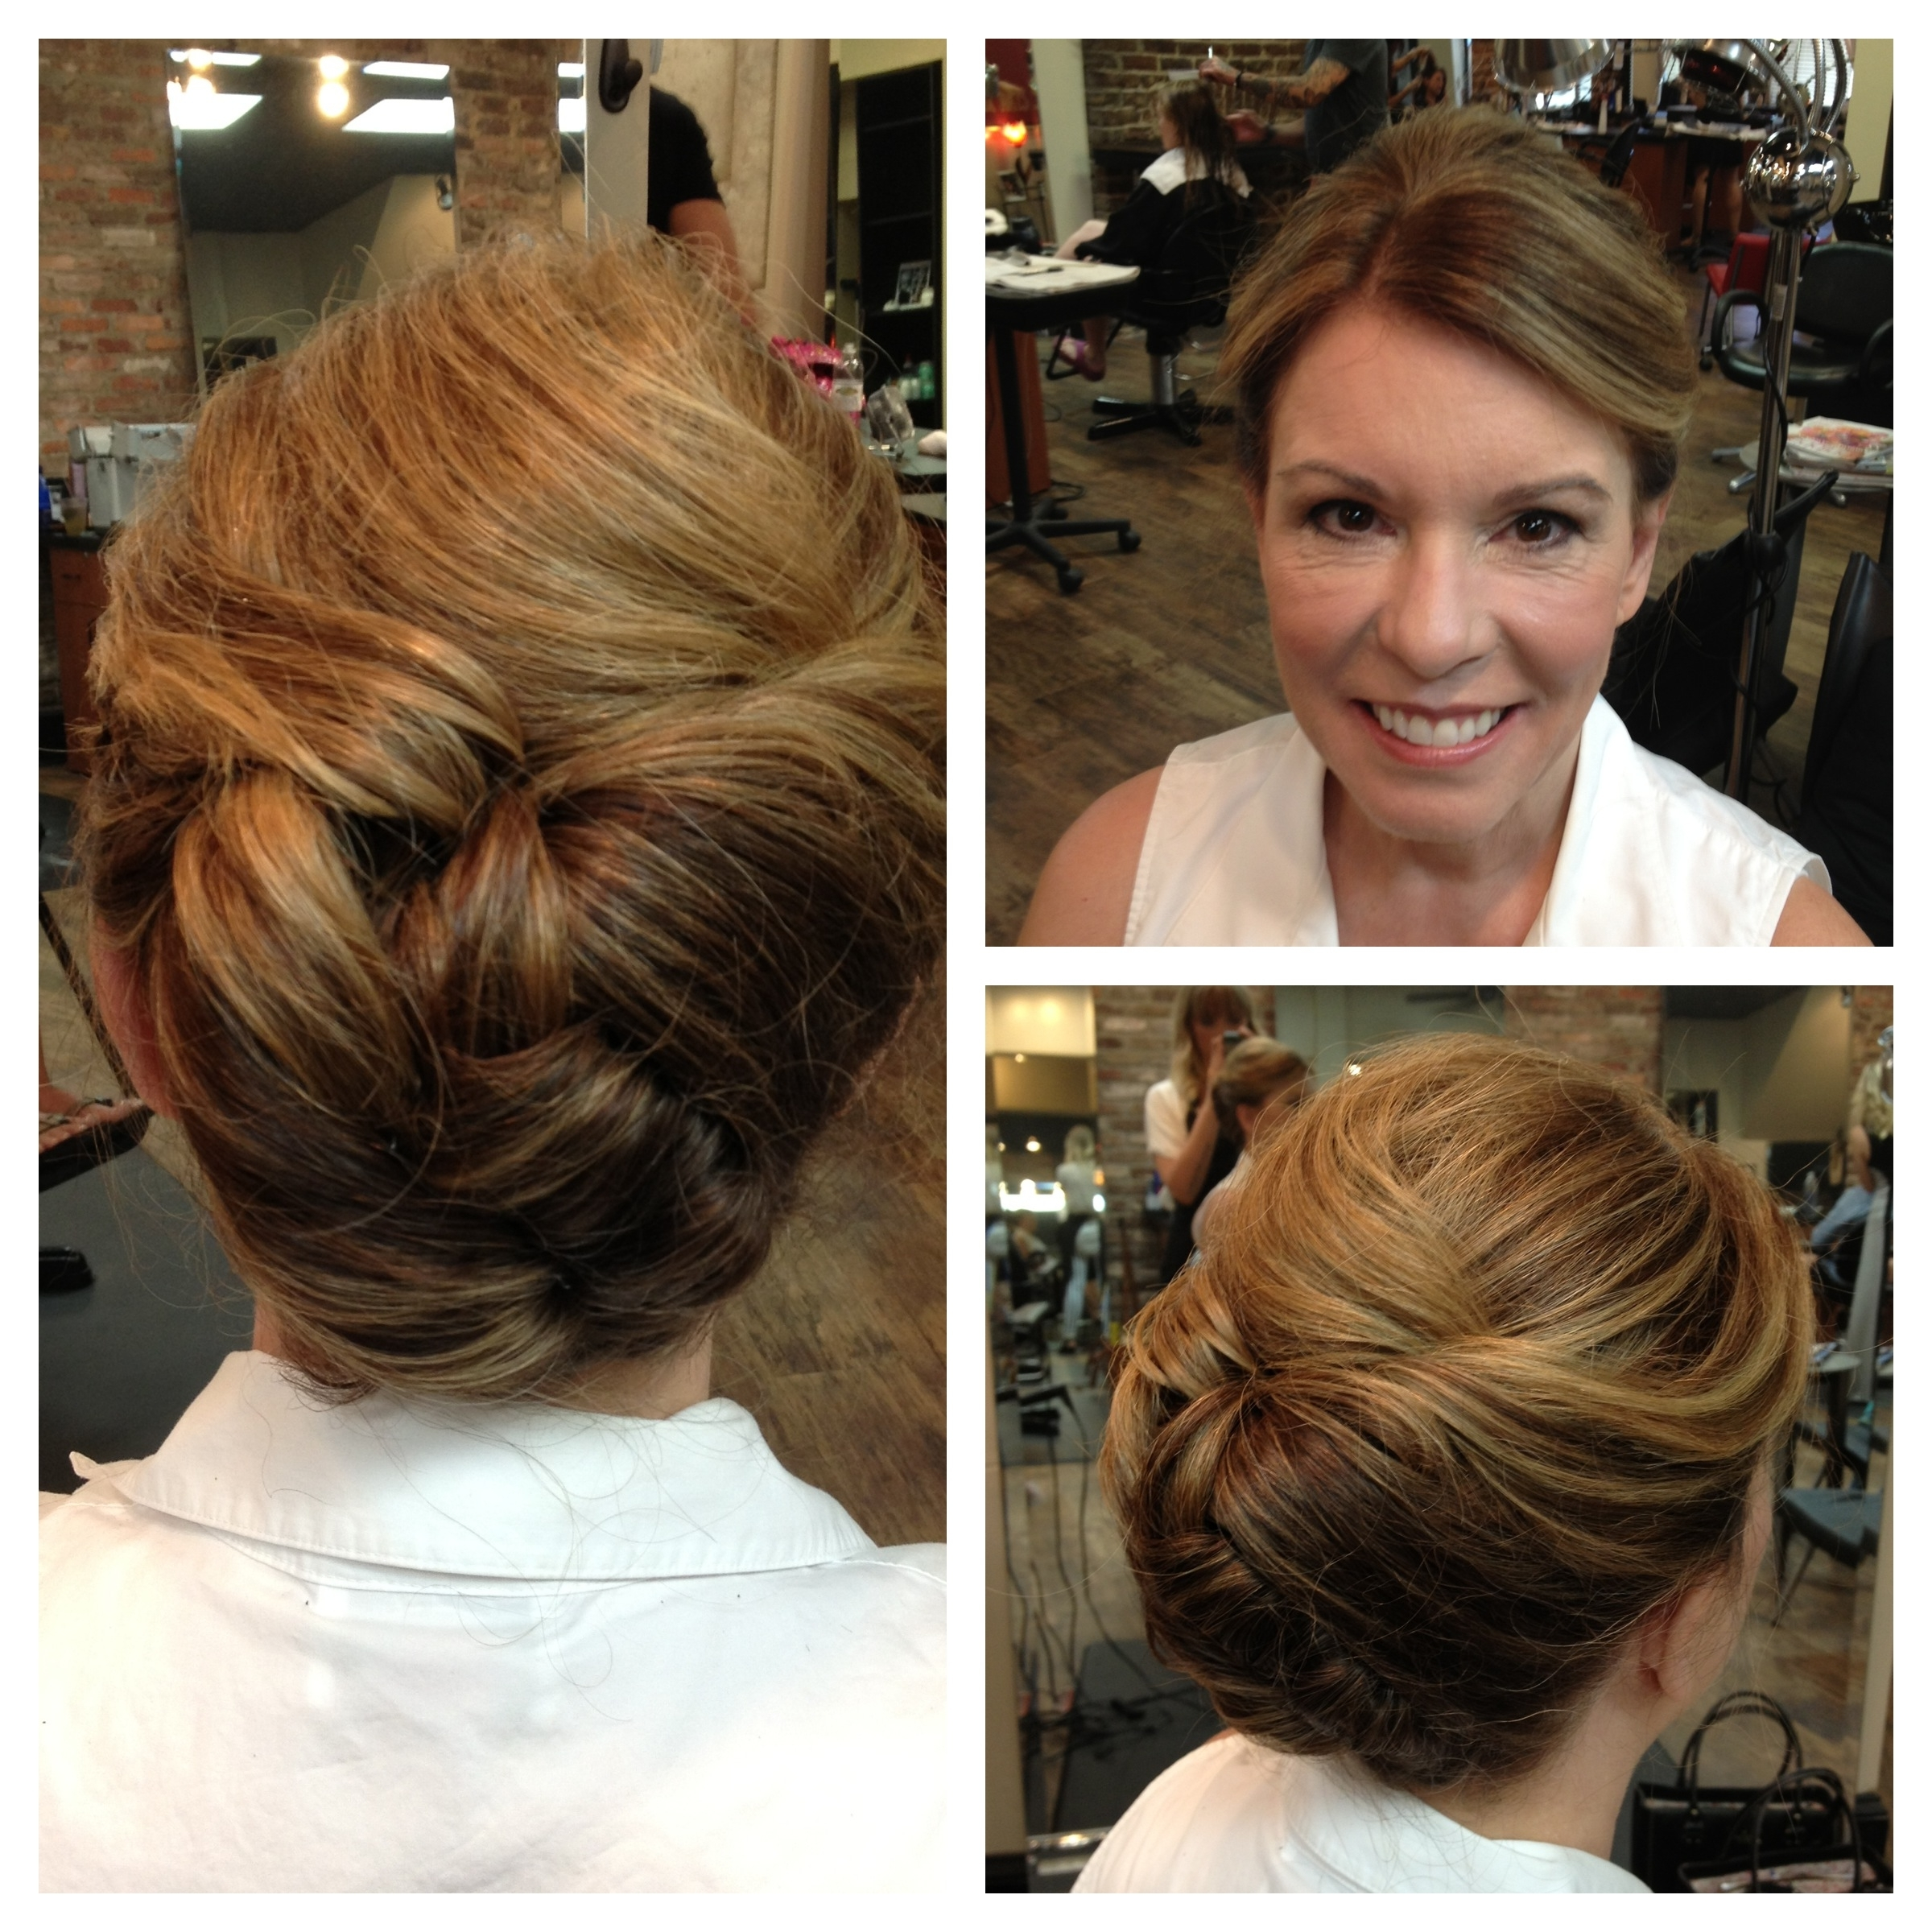 Most Recent Mother Of Groom Hairstyles For Wedding Throughout Mother Of Bride Hairstyles Updos Ideas The Updo For Weddings (View 8 of 15)